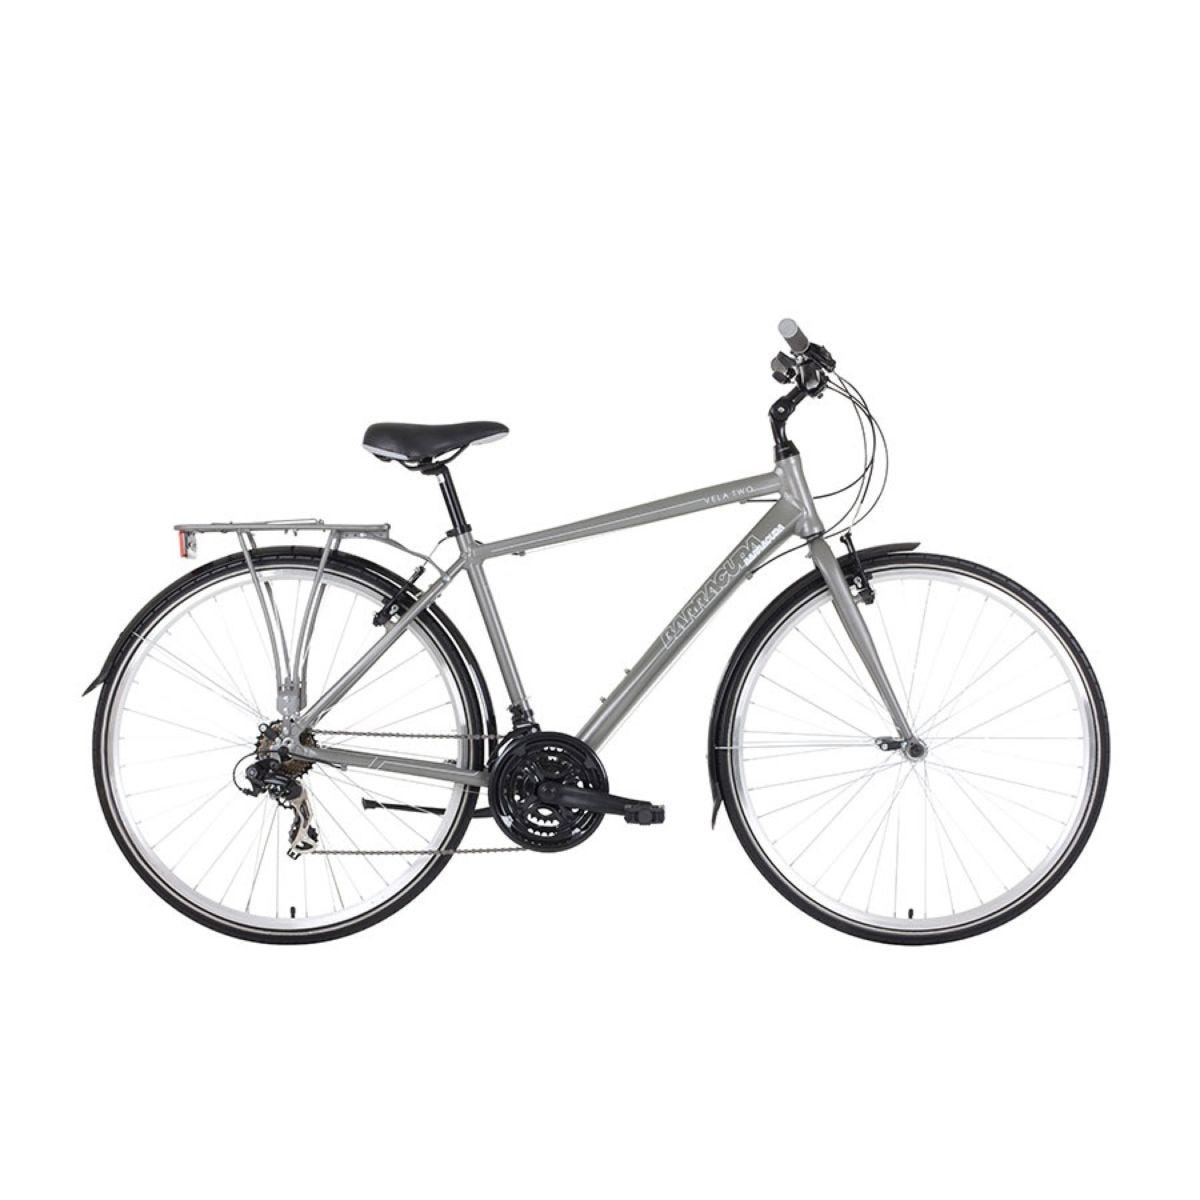 Barracuda Vela 2 Men's 700c Alloy Hybrid FE Bike